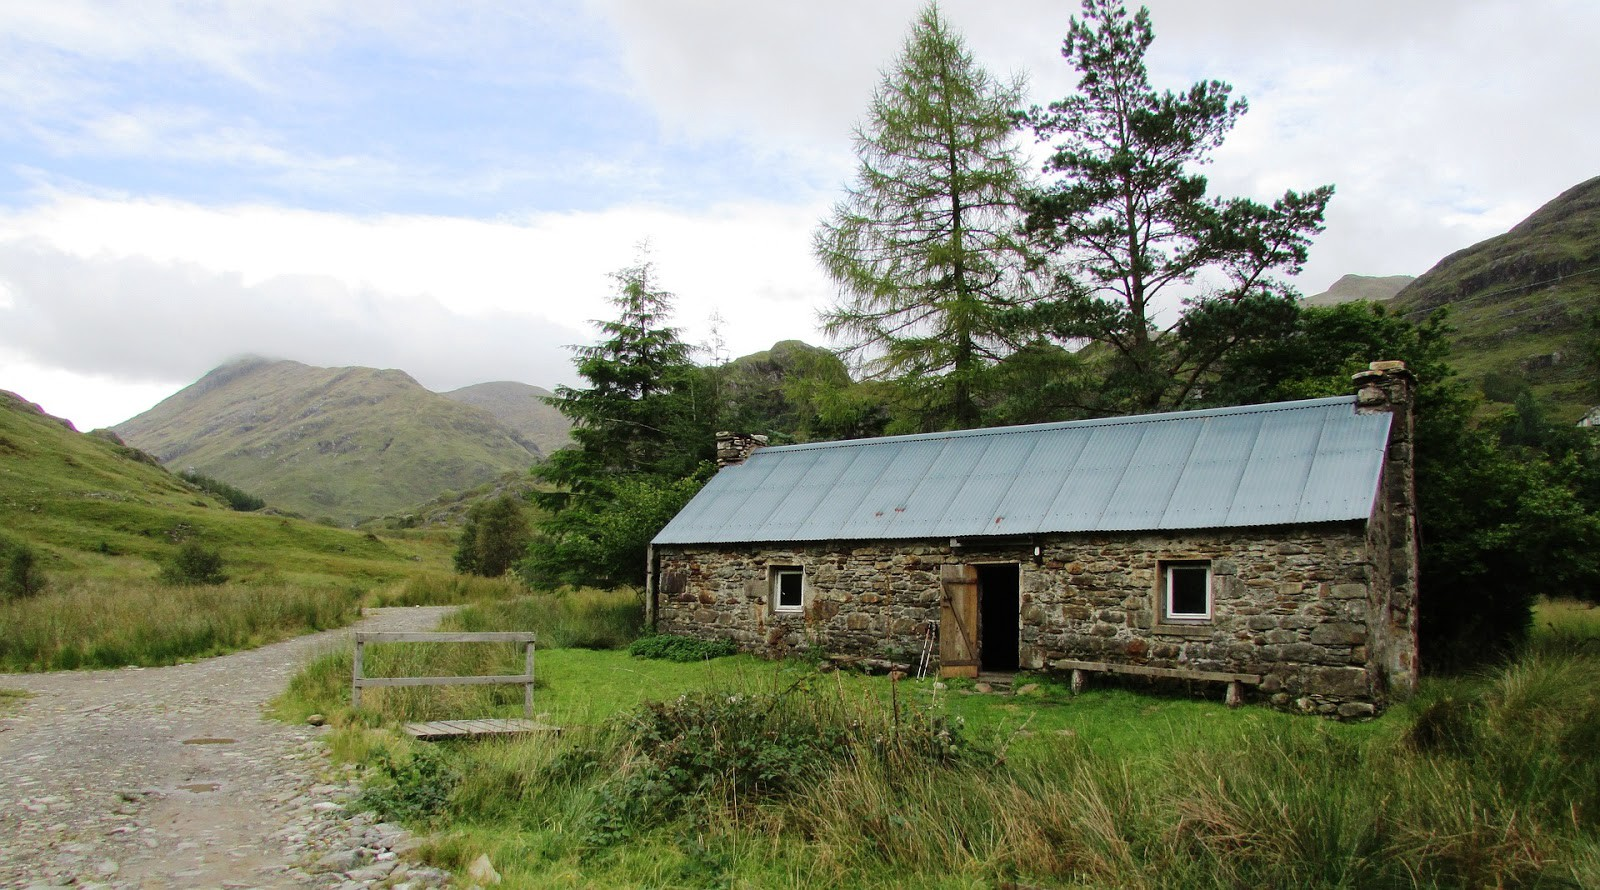 Wild Camping Spots UK: 20 of the Best Places to Wild Camp ...